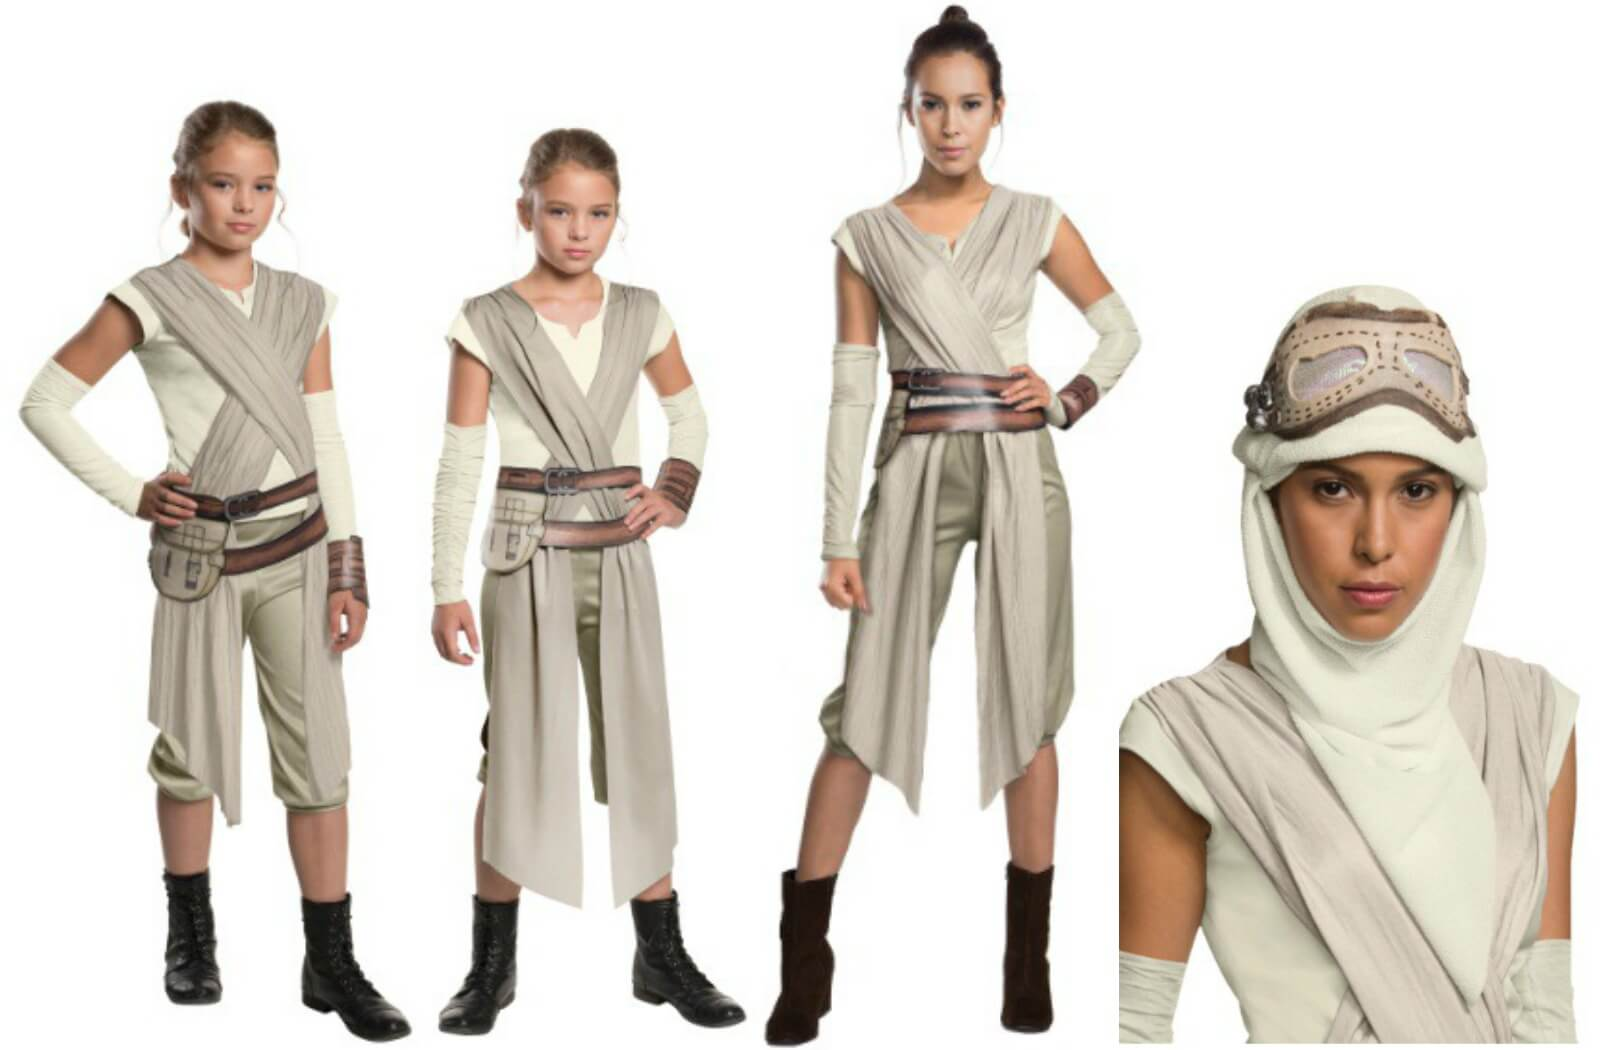 Halloweencostumes blog rey costumes solutioingenieria Choice Image